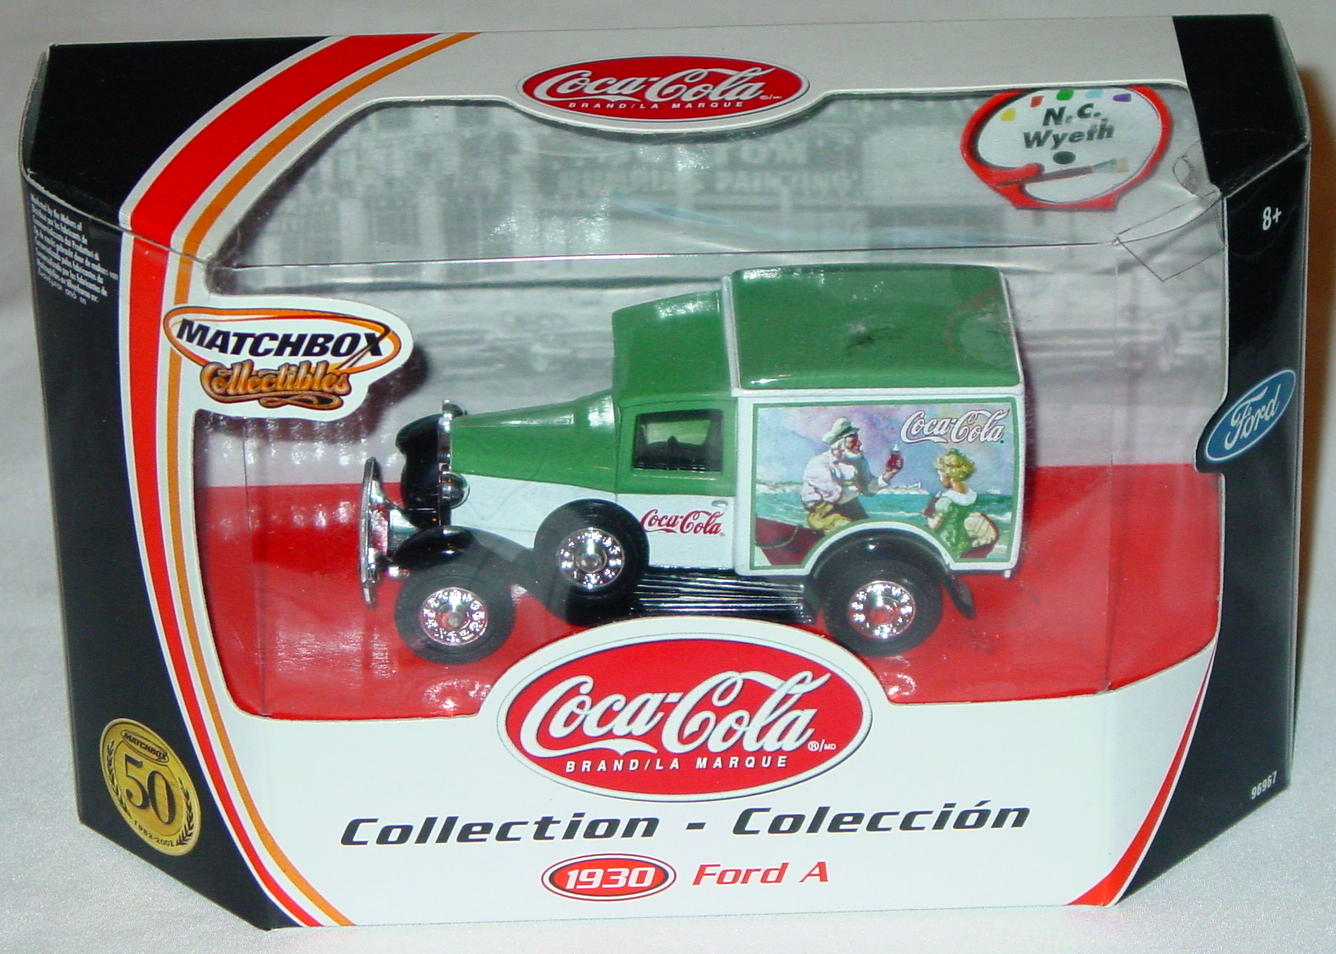 Collectibles - 96967 30 Ford Model A Van Coke N. C. Wyeth